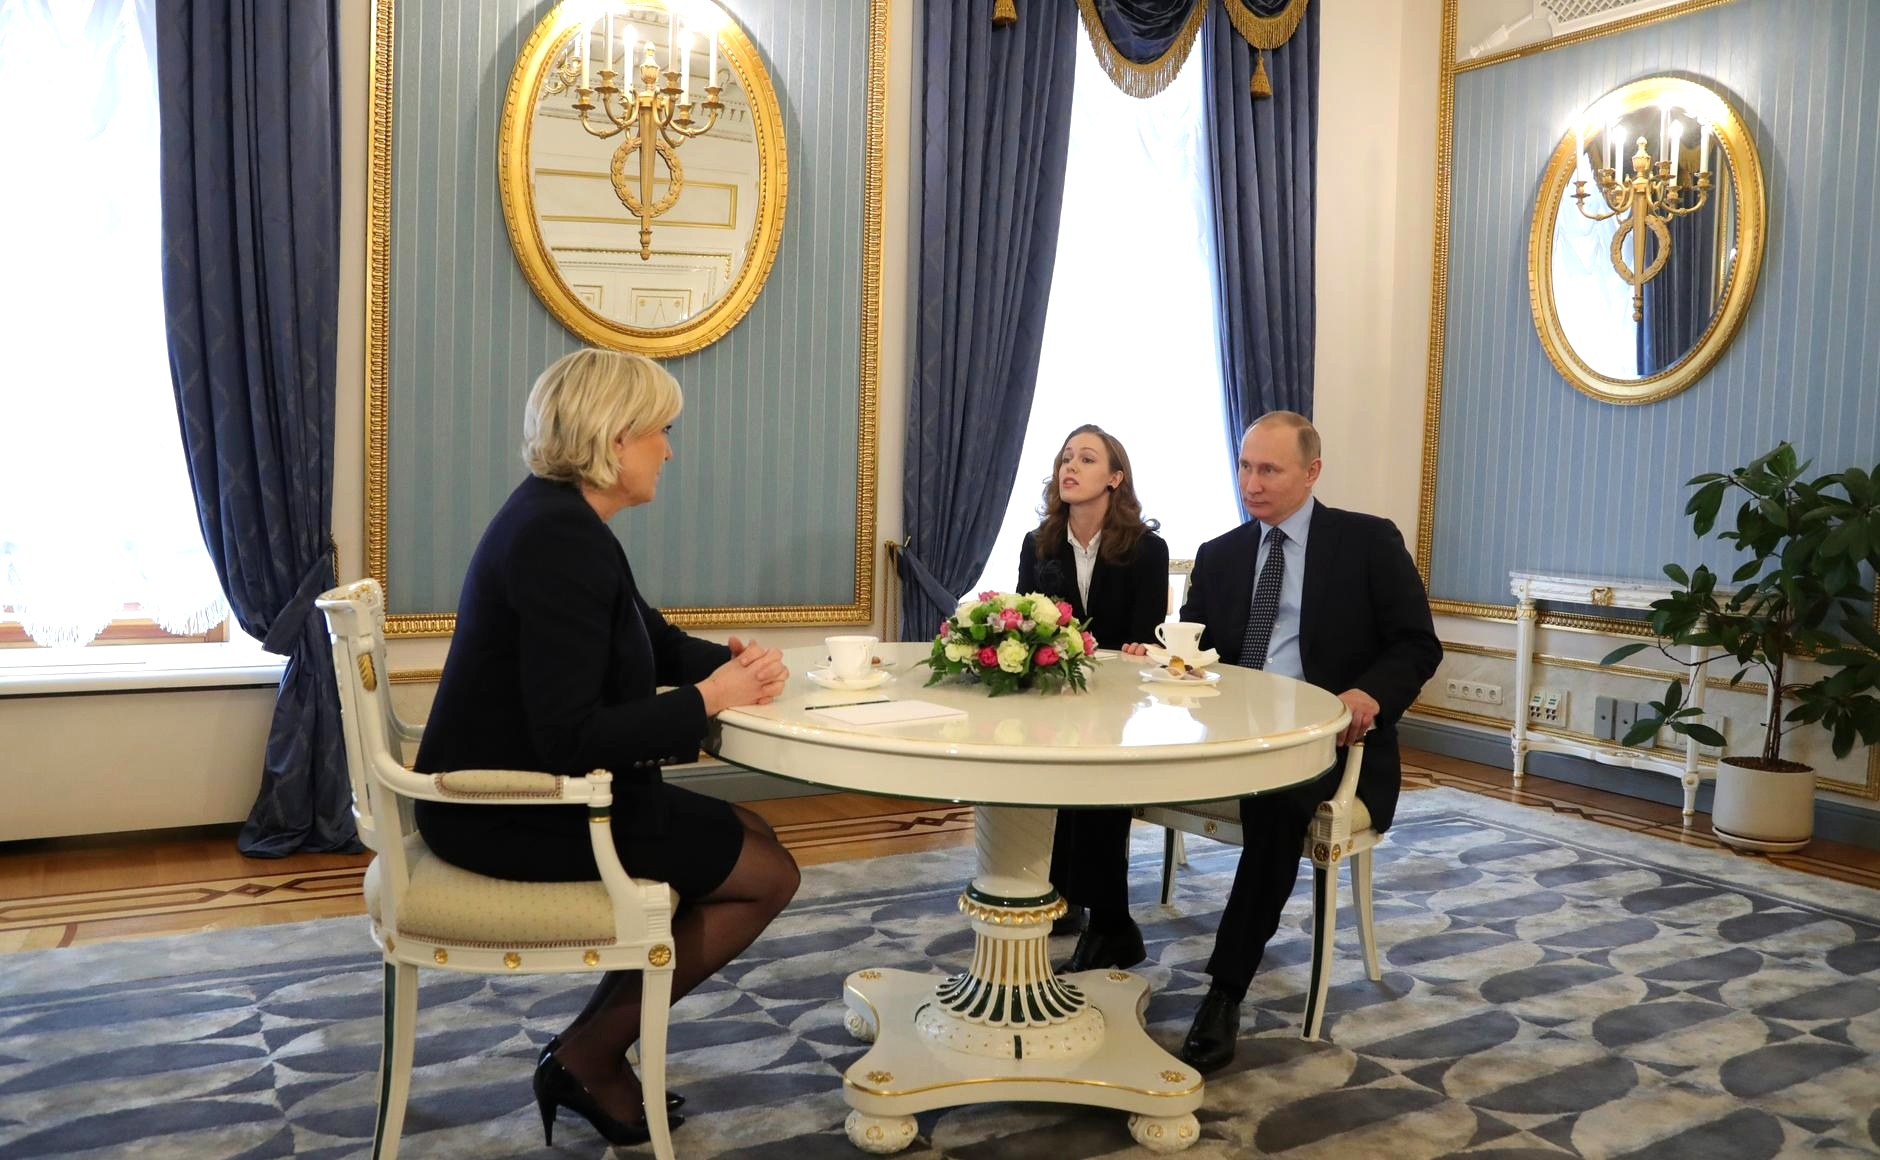 Vladimir Putin meets with Marine Le Pen in the Kremlin.